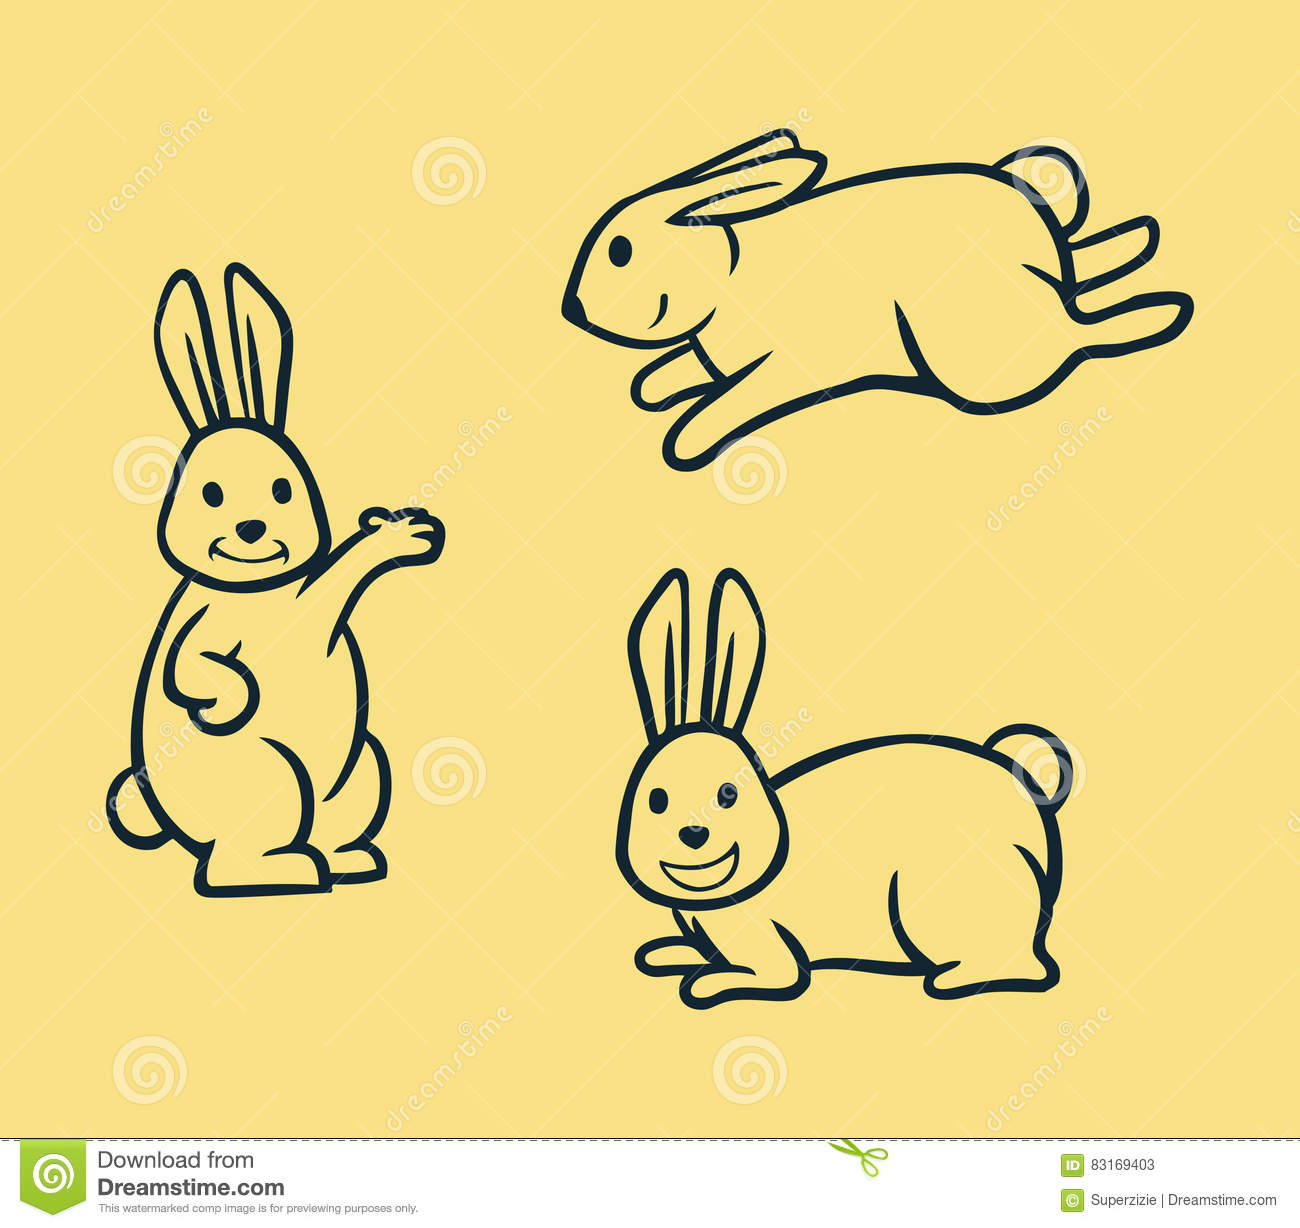 Line Art Vector Illustrator : Rabbit simple line art stock vector image